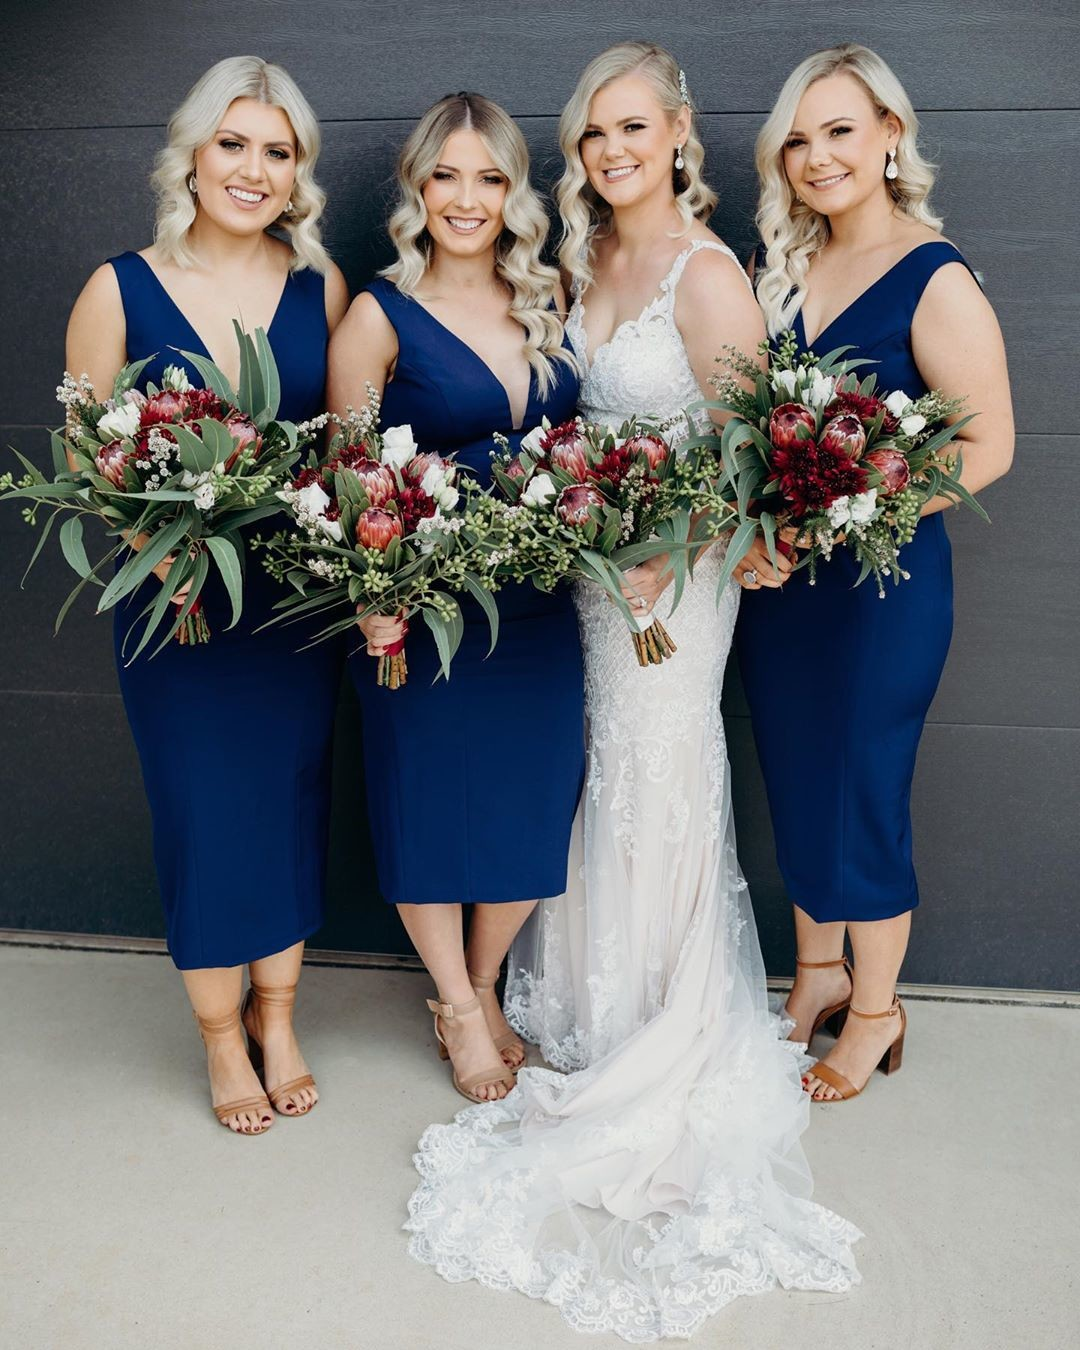 REAL WEDDING 💙 Karlie with her beautiful #bridesmaids